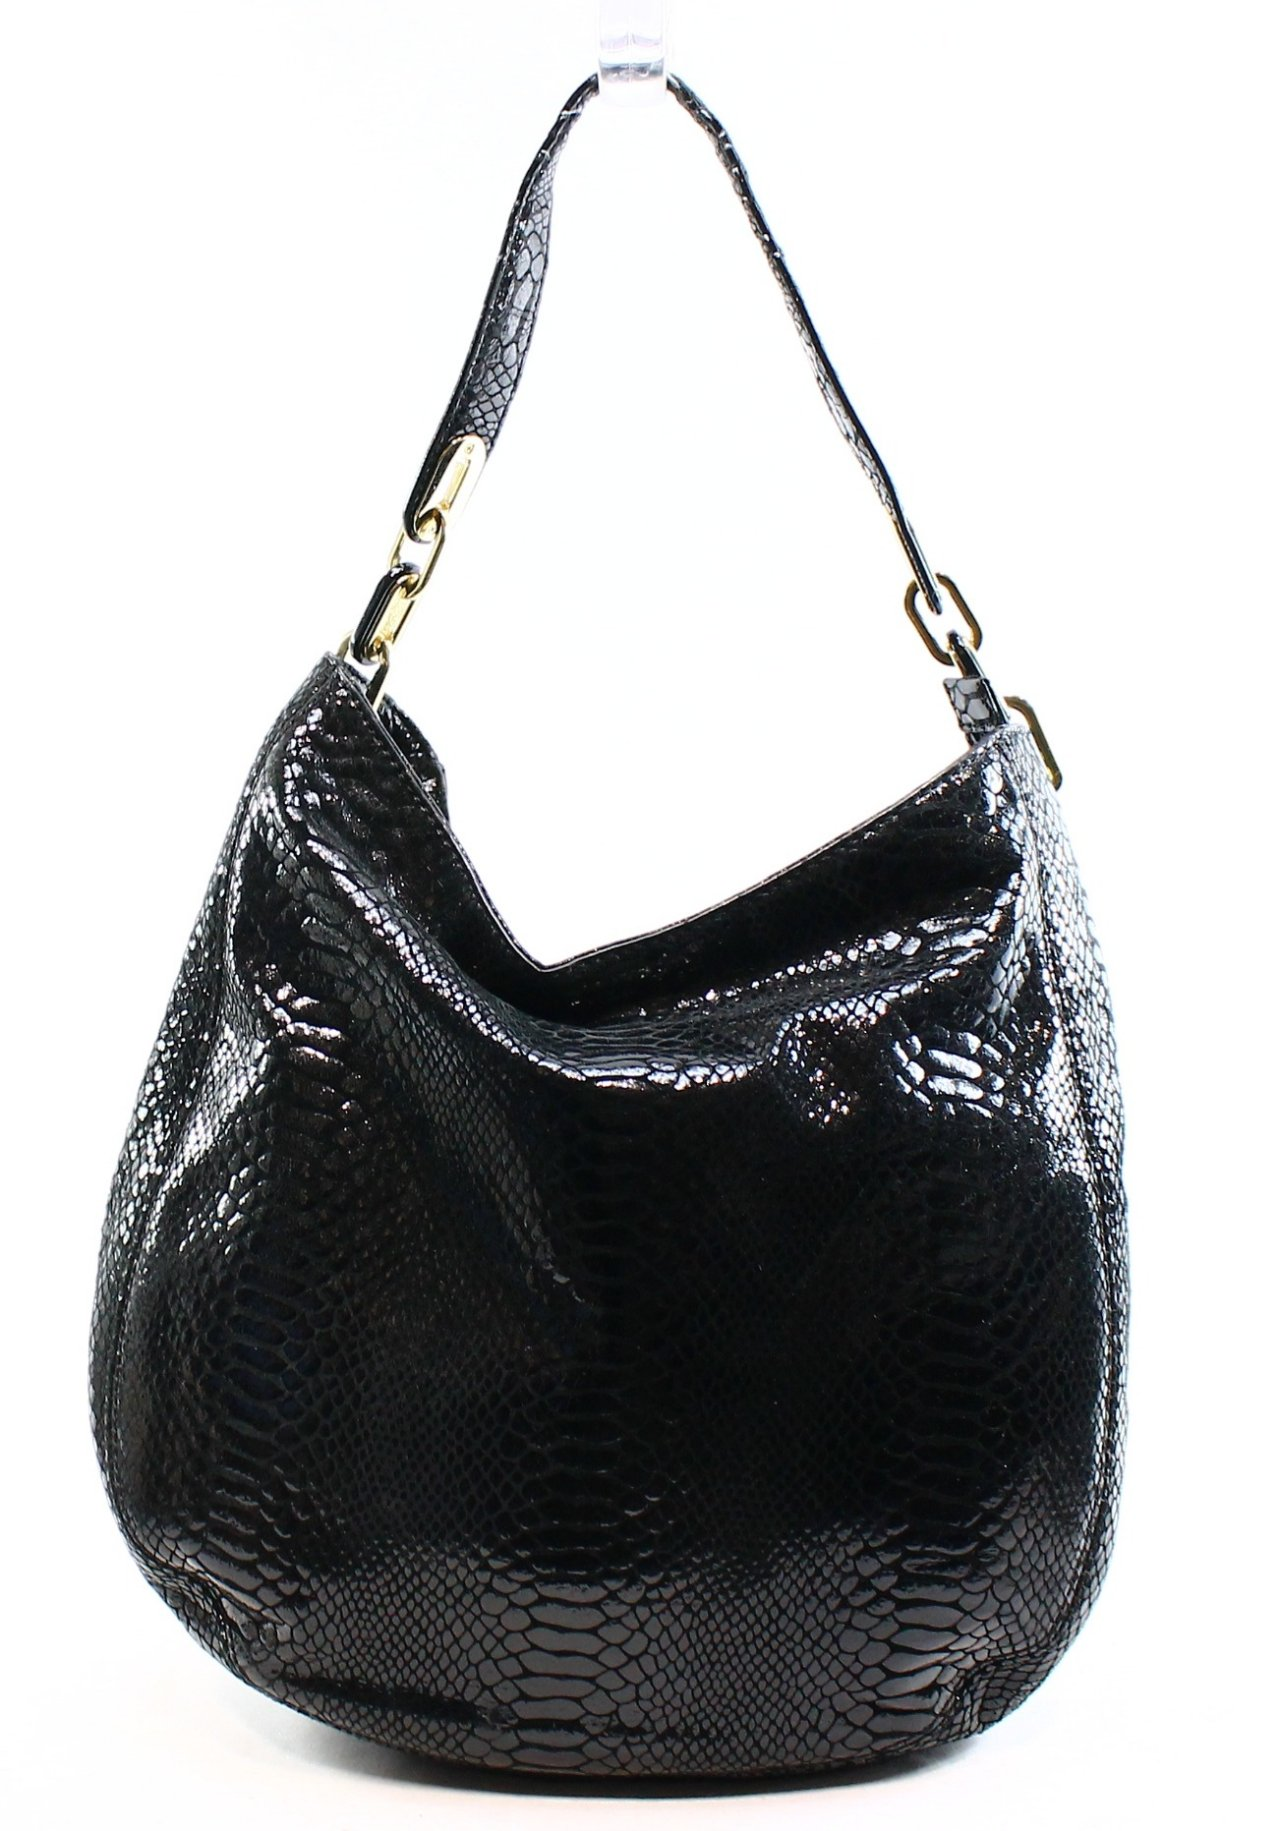 black and gray michael kors bag  michael kors black patent